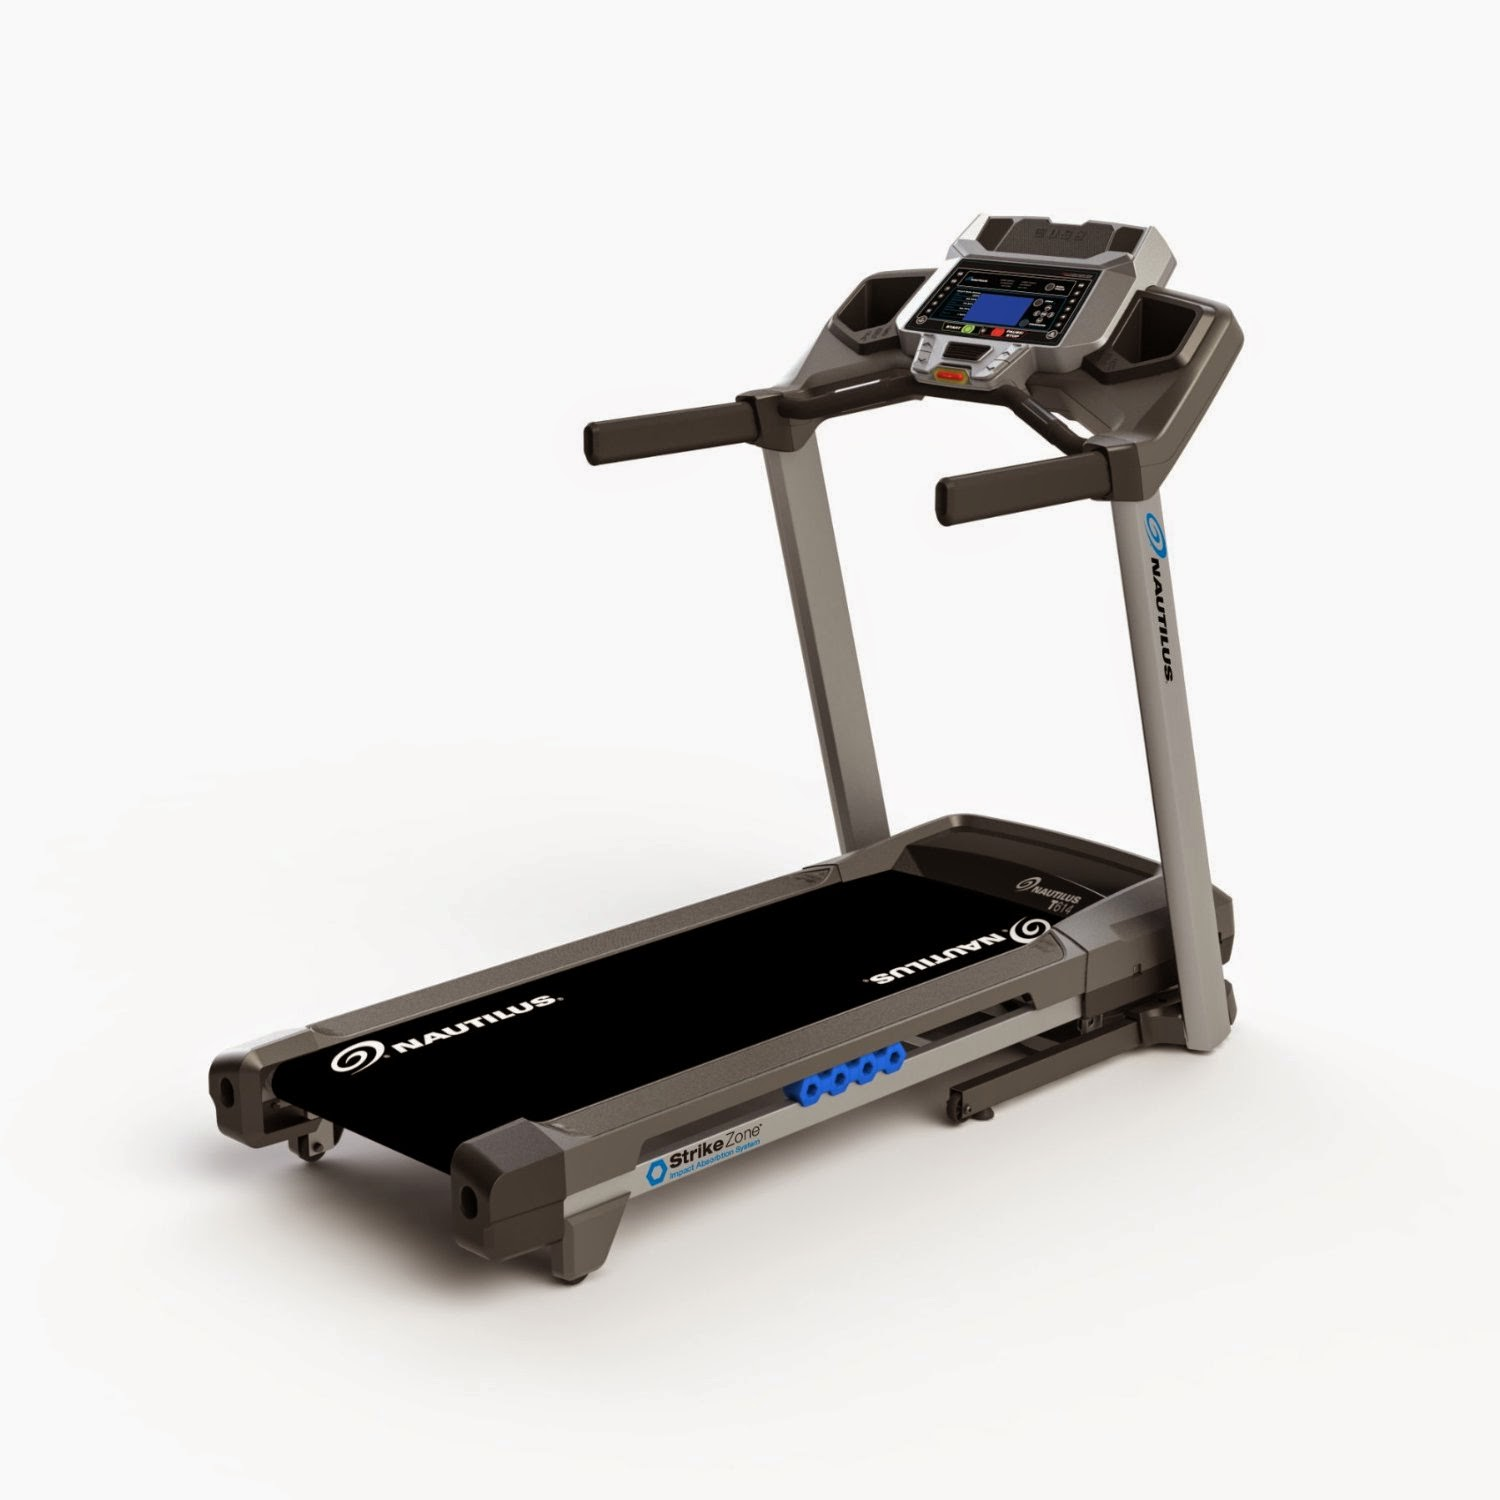 Nautilus T614 Treadmill, review features plus compare with T616, folding deck, cushioned deck, 0-12 MPH, 2.75 CHP, 22 programs, 0-12% incline, 0-12 MPH, blue backlit LCD display, acoustic chambered speakers, MP3 input, USB charging port & data exchange, performance tracking